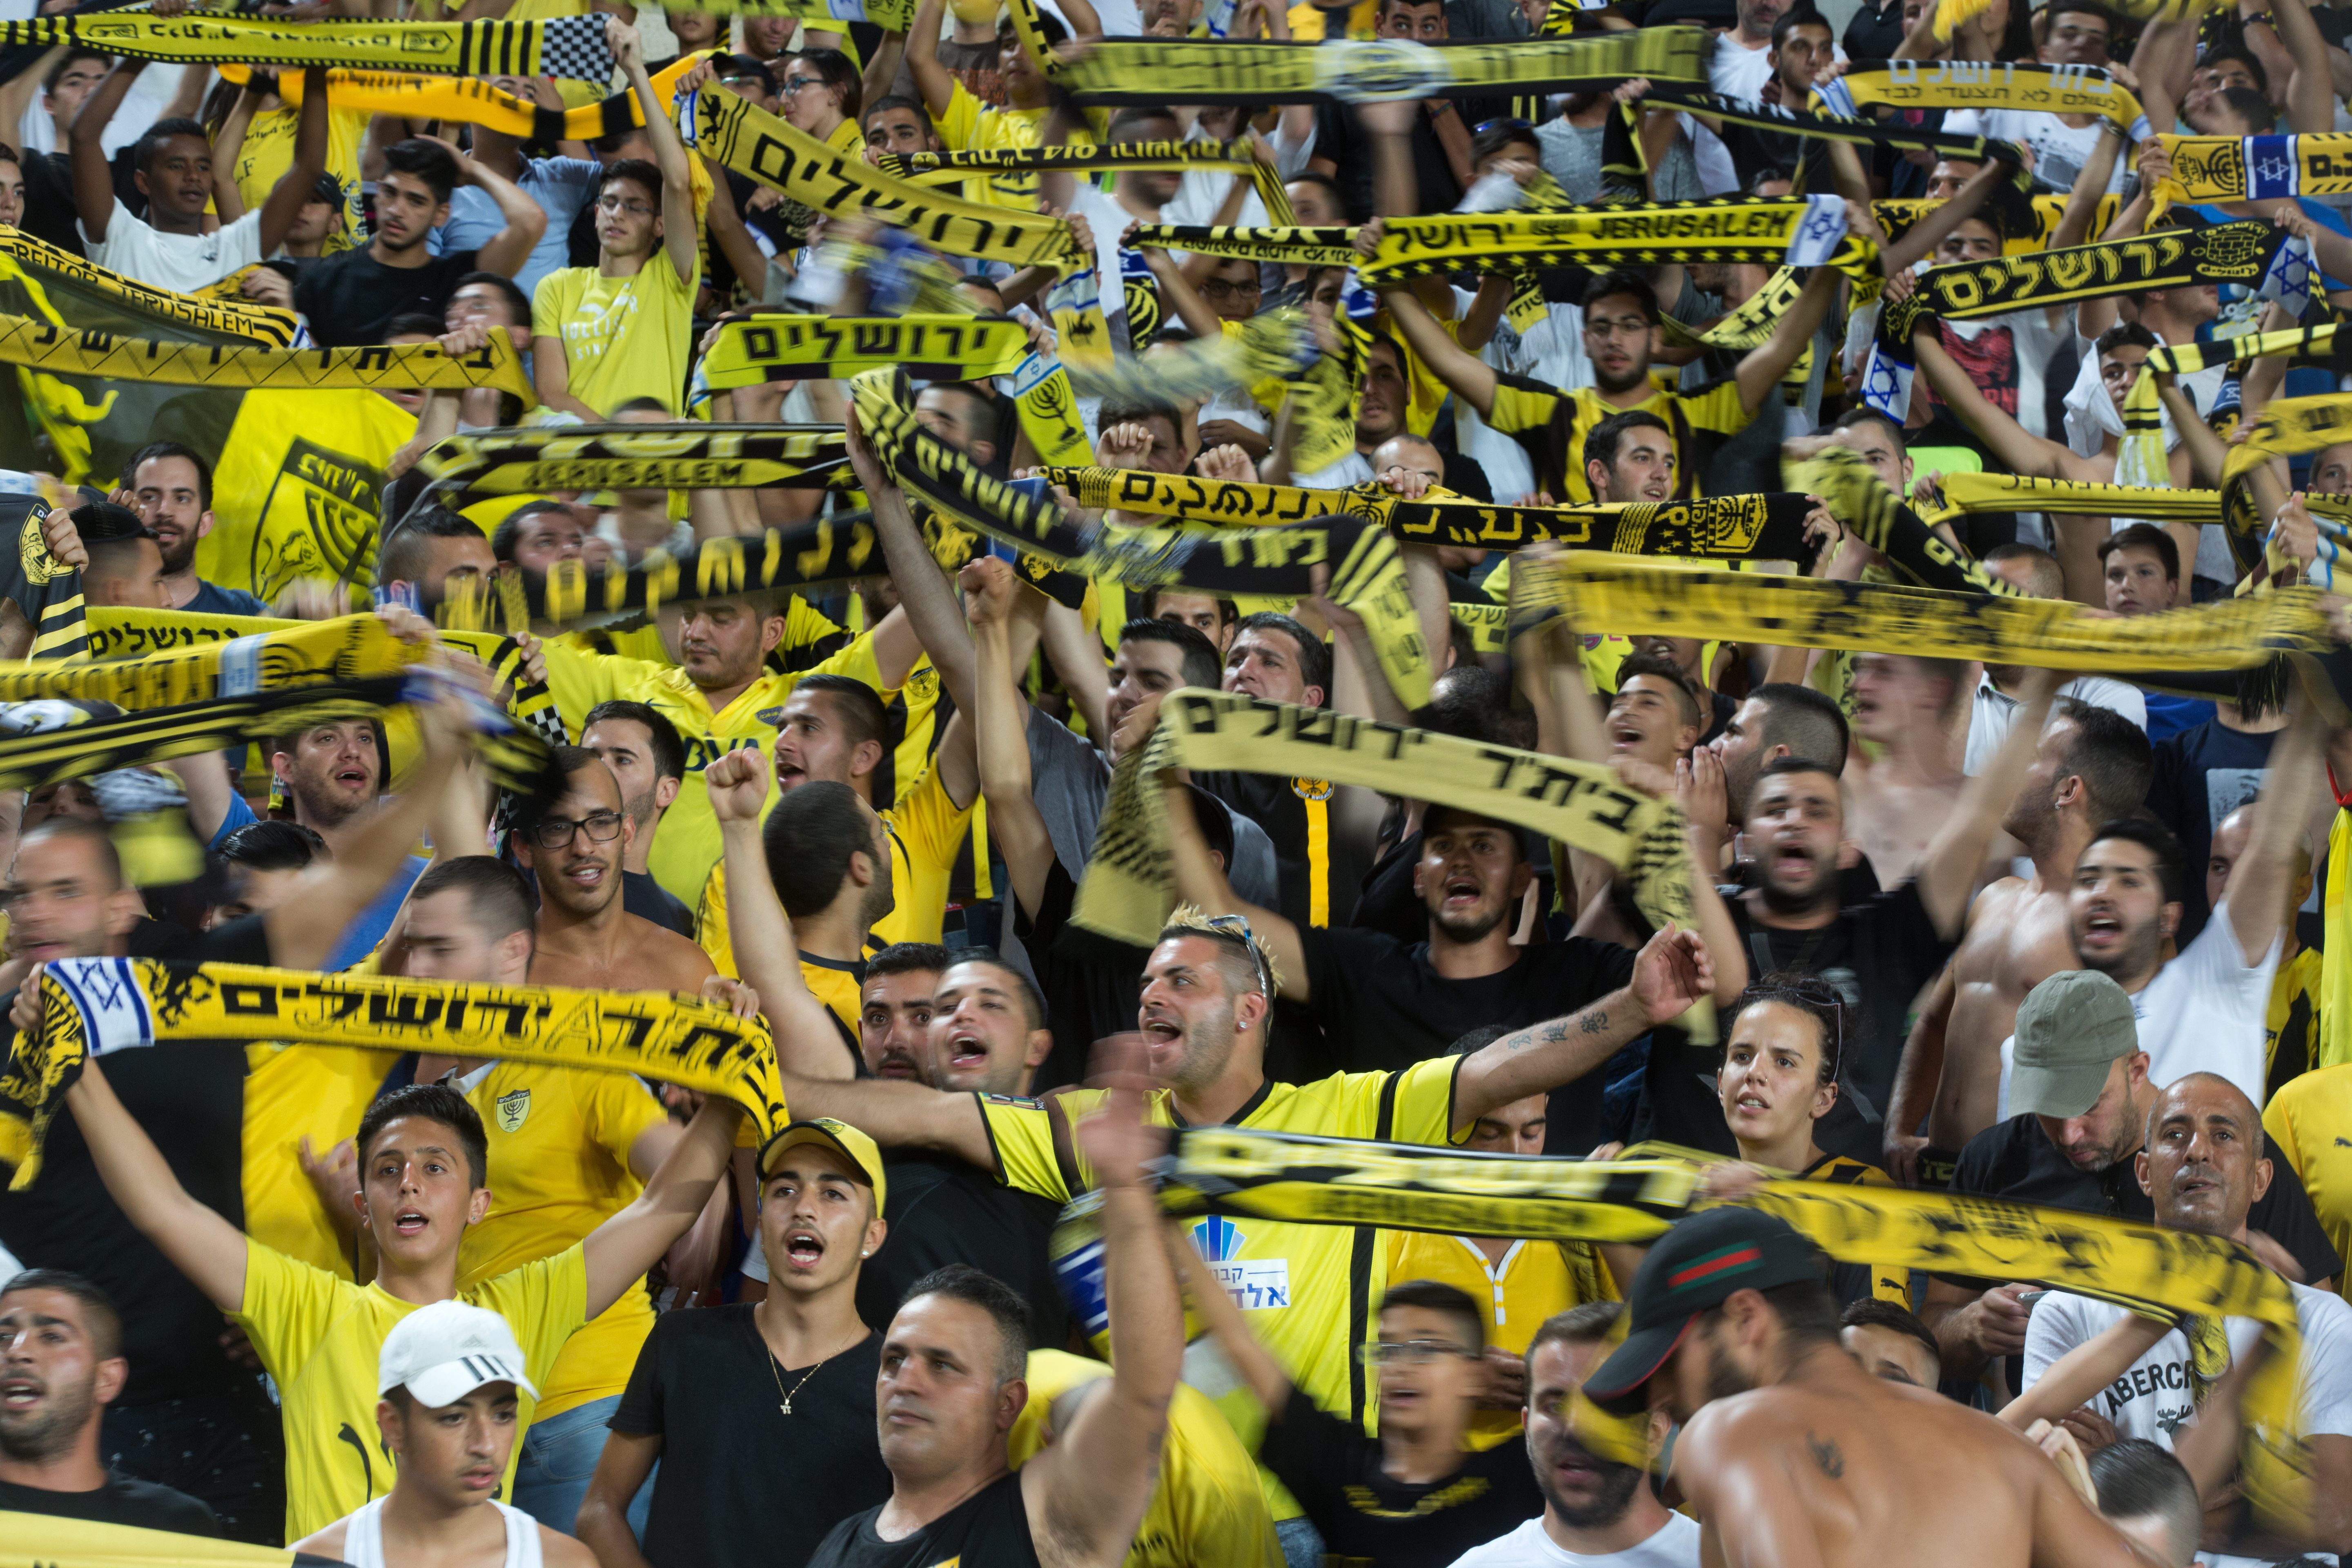 Supporters of Israeli football club Beitar Jerusalem cheer during their clubs return match against Belgium team Charleroi on July 23, 2015 at Teddy Stadium in Jerusalem.